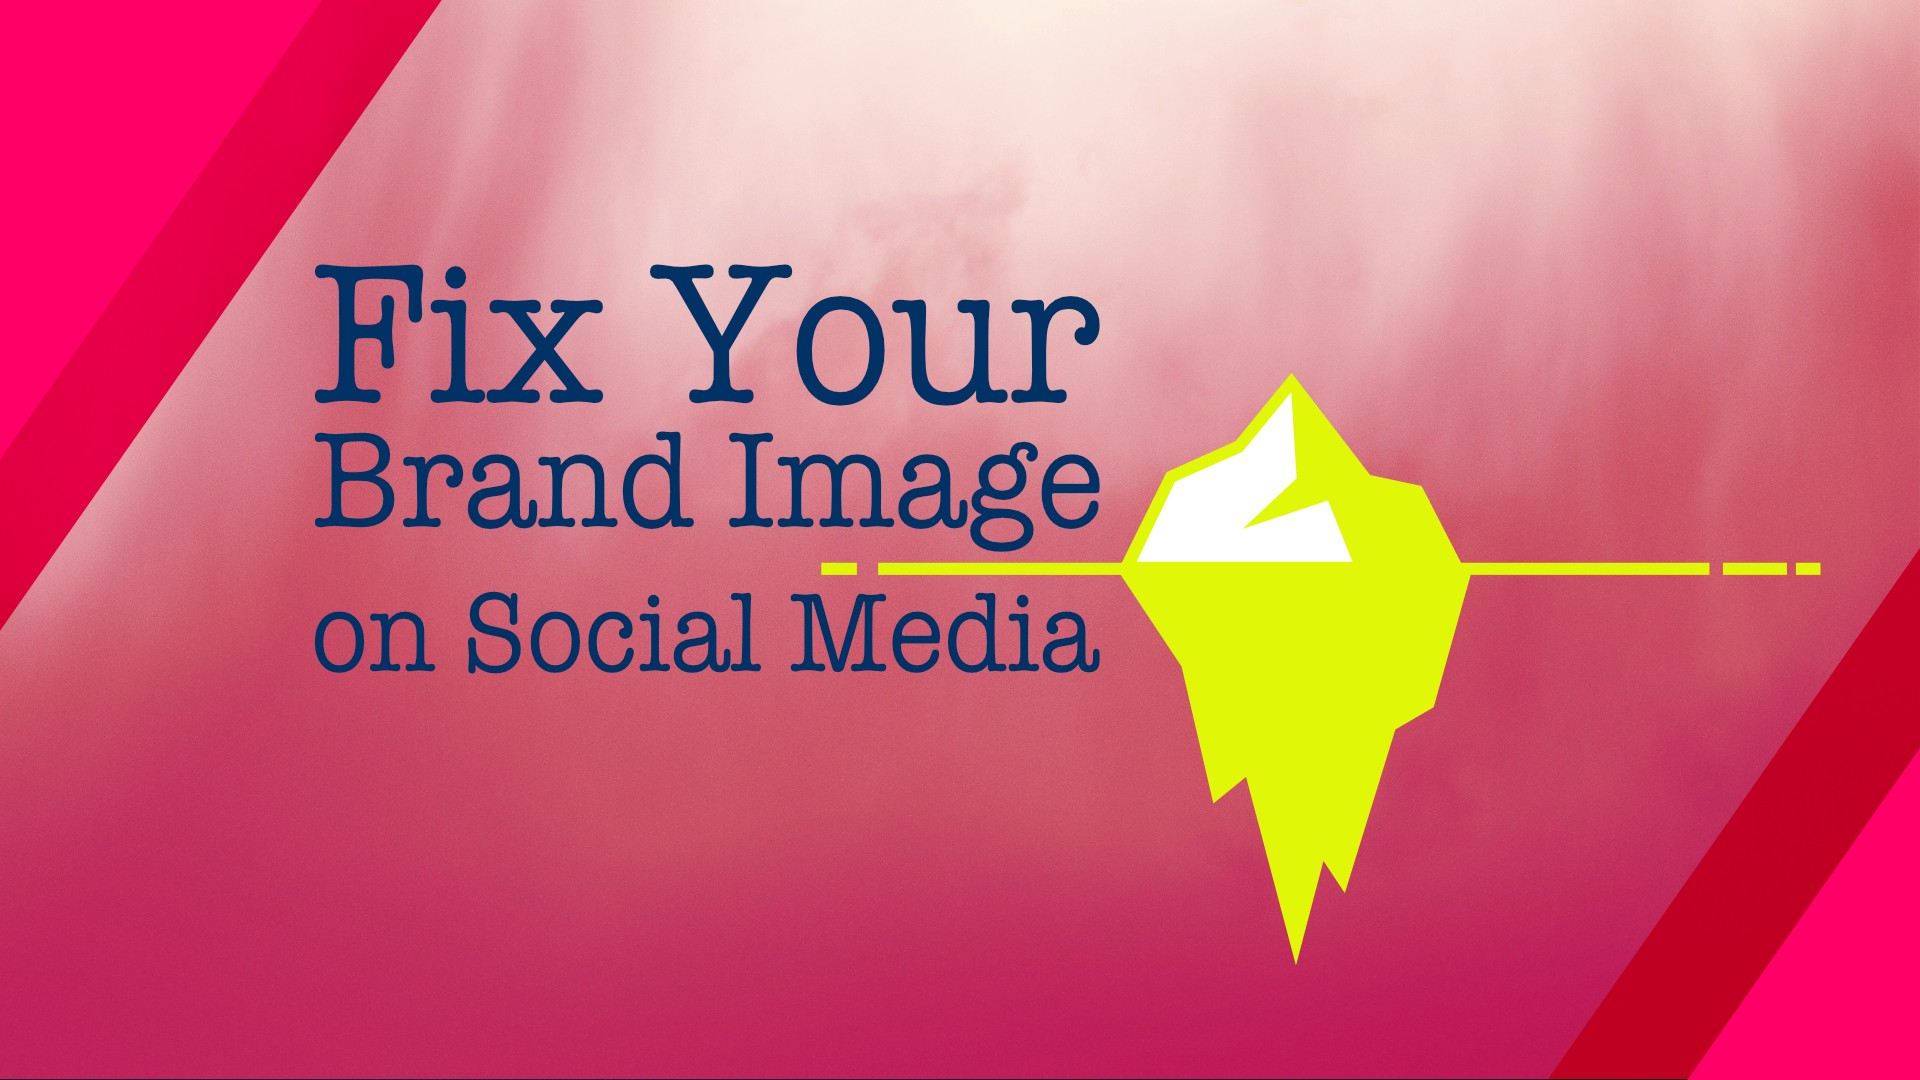 Header illustration by author—Fix Your Brand Image on Social Media—showing iceberg